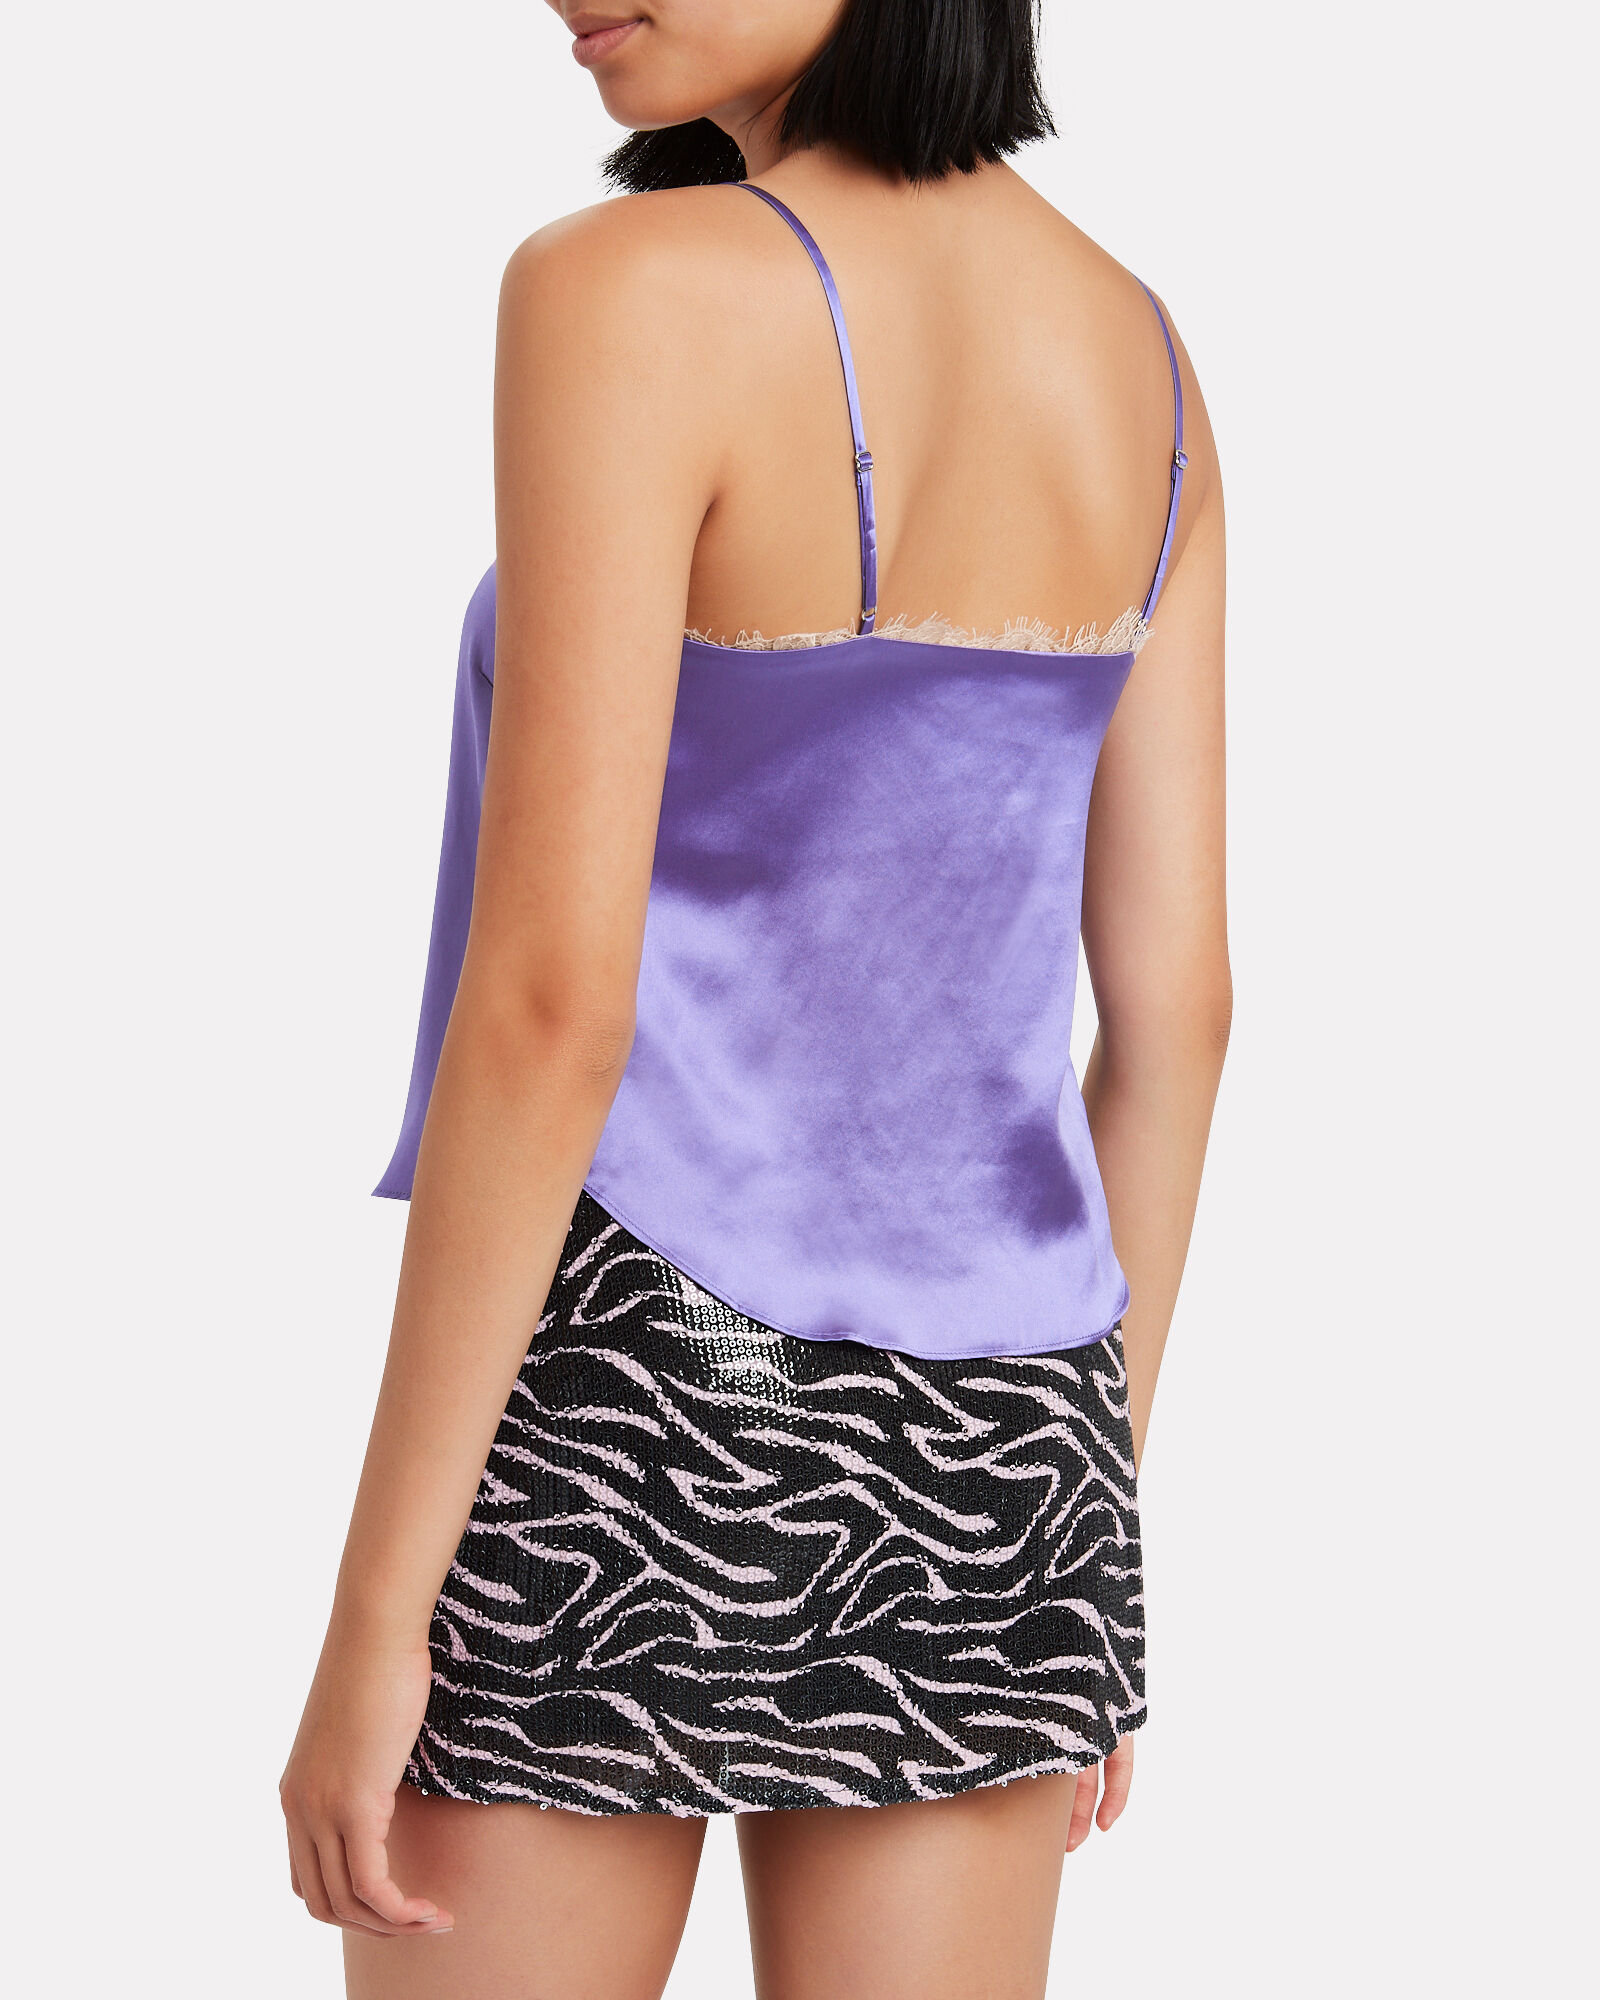 Lace-Trimmed Silk Camisole, AMETHYST, hi-res